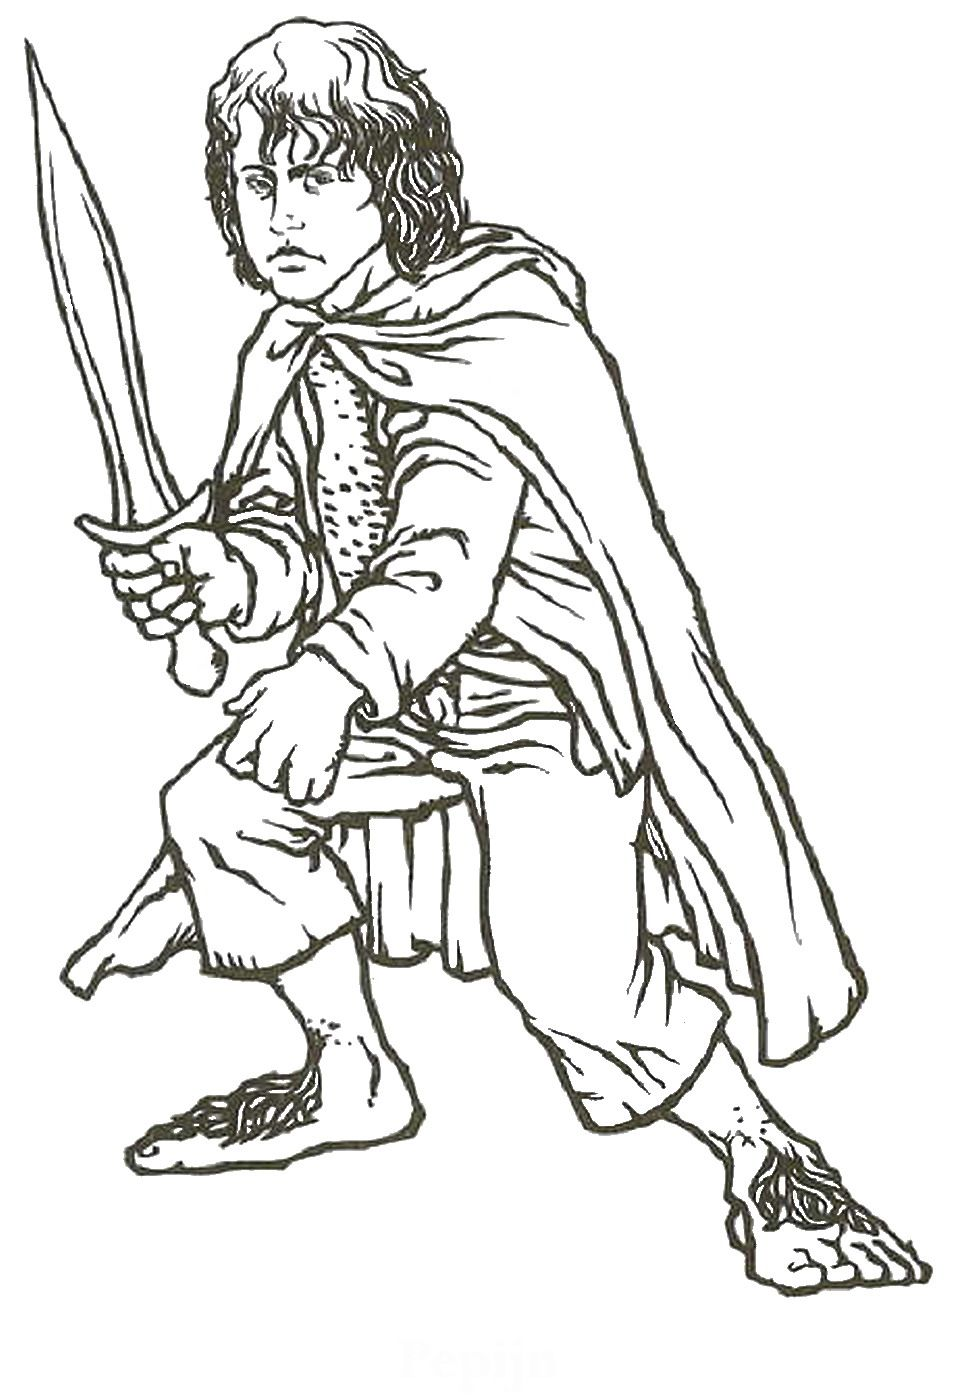 lord_of_the_rings_cl10.jpg (971×1400) | Coloring Pages | Pinterest